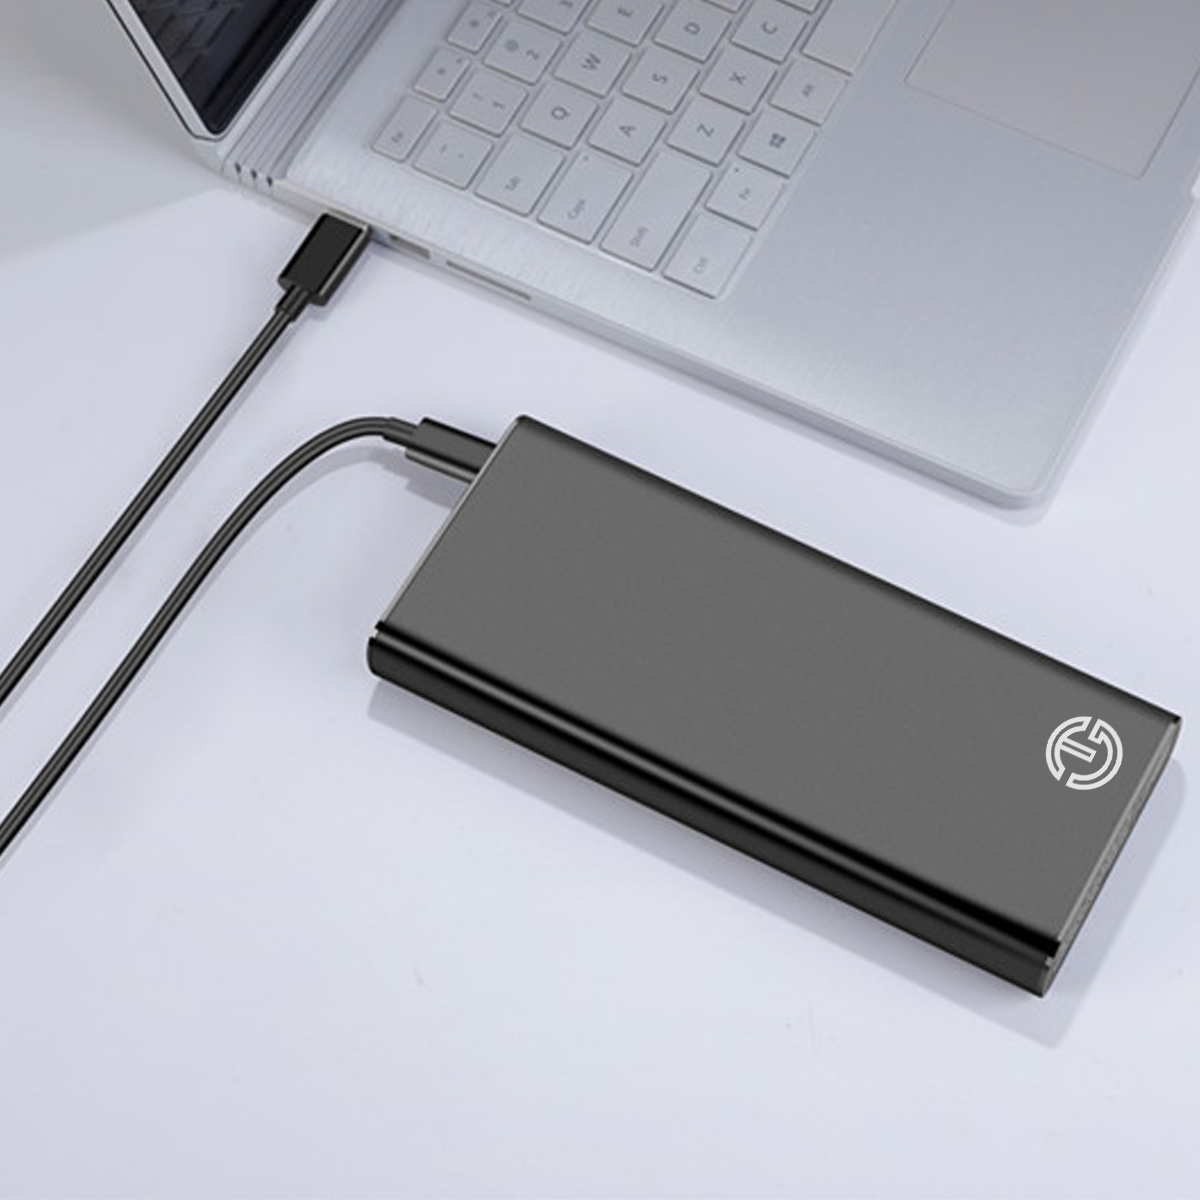 Z-Series 100W PD | 26800mAh USB C PD POWER BANK